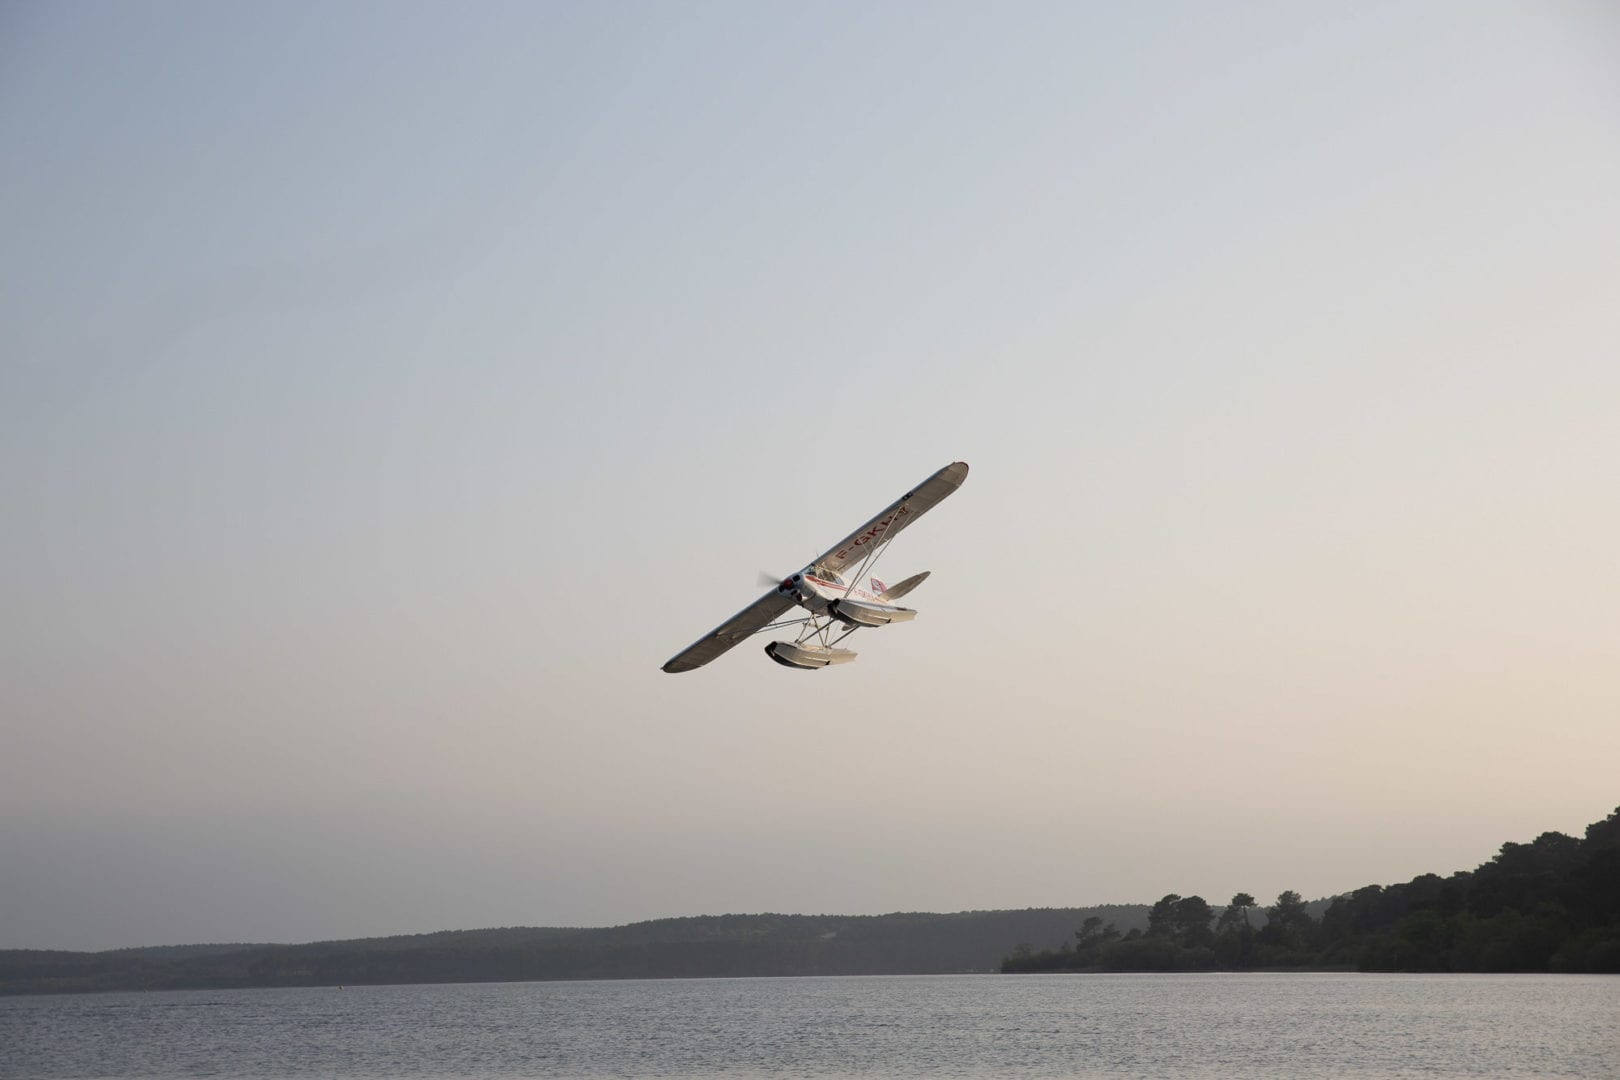 We still had time to take advantage of the beautiful end of the day and go for a quick flight on the hydro airplanes.